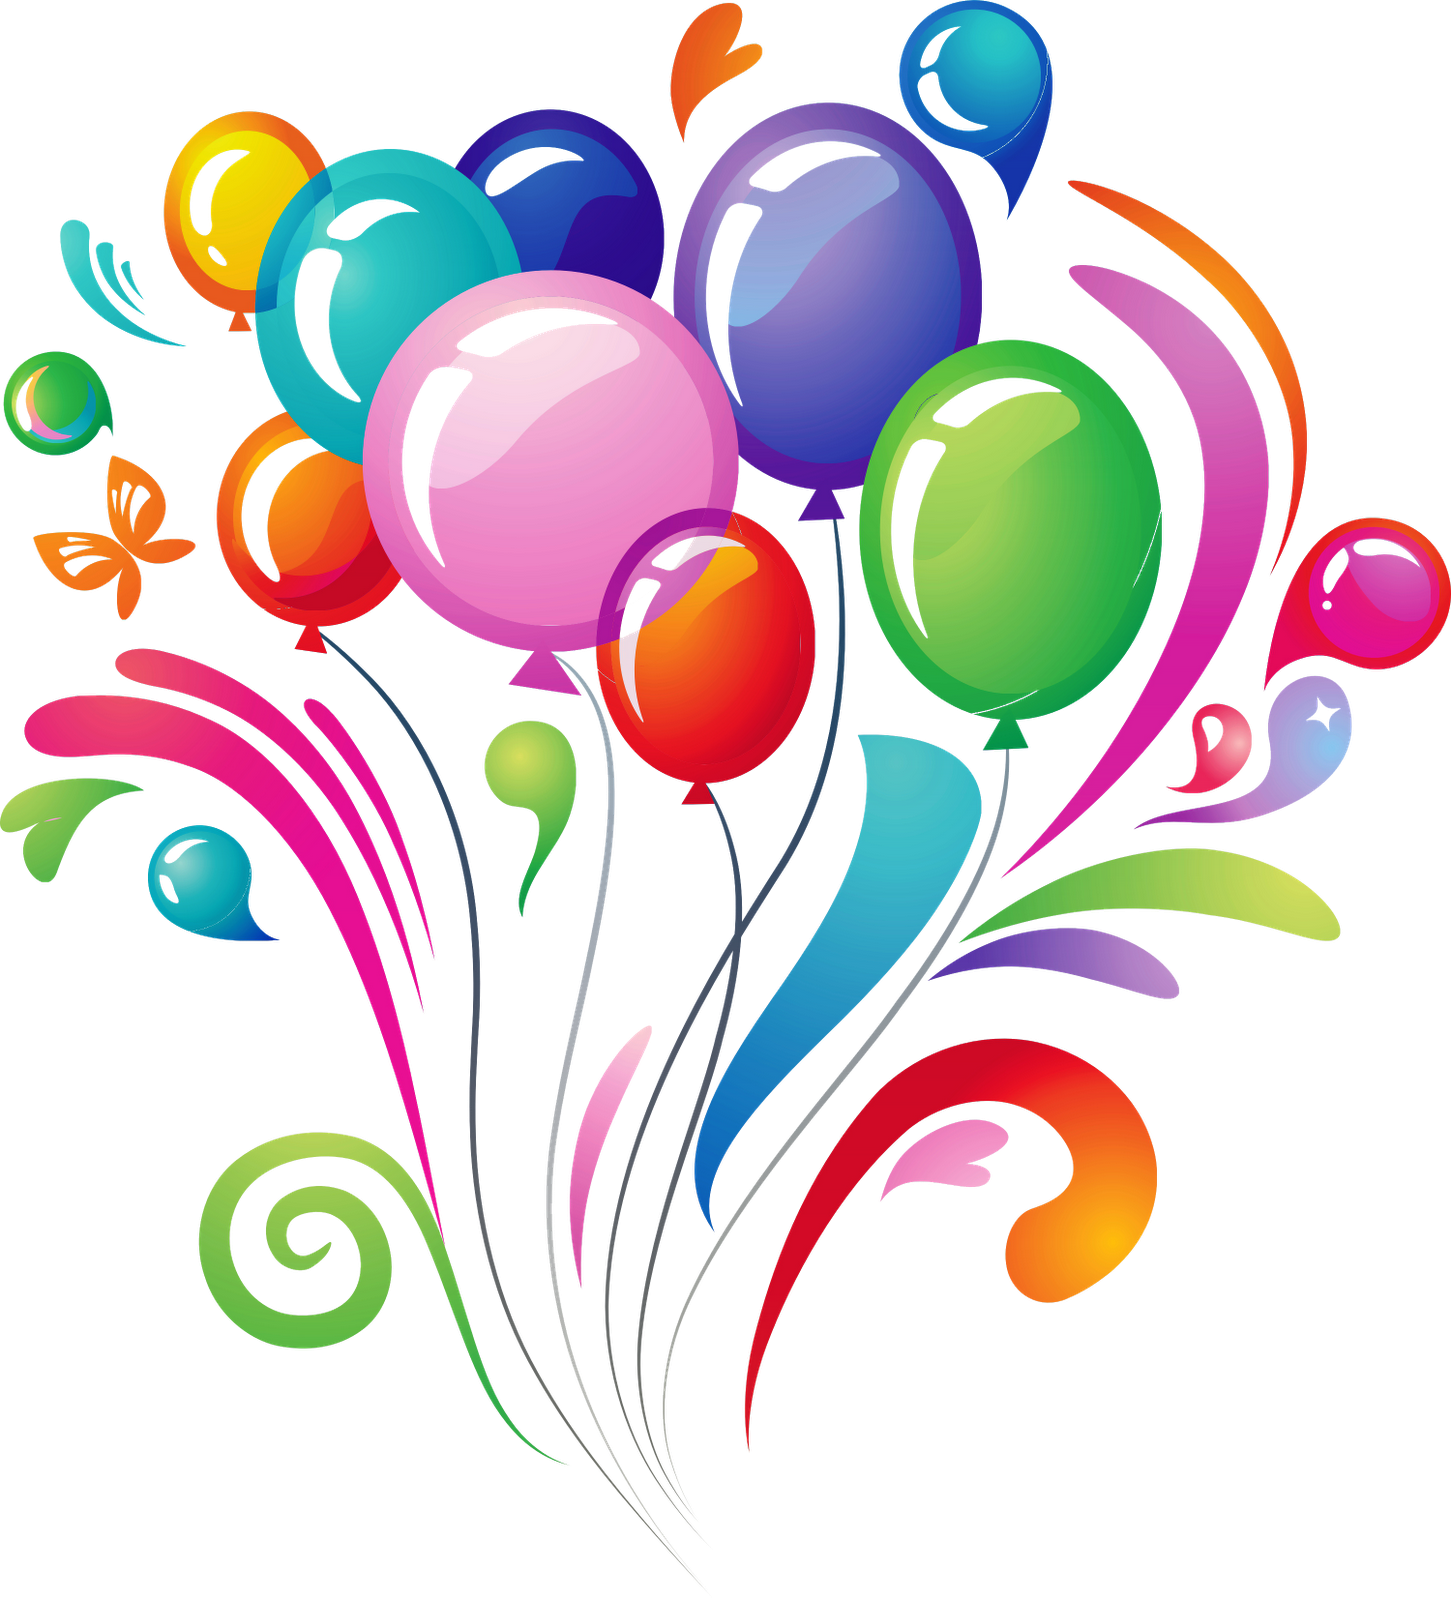 Download Happy Birthday Transparent Background For Designing.